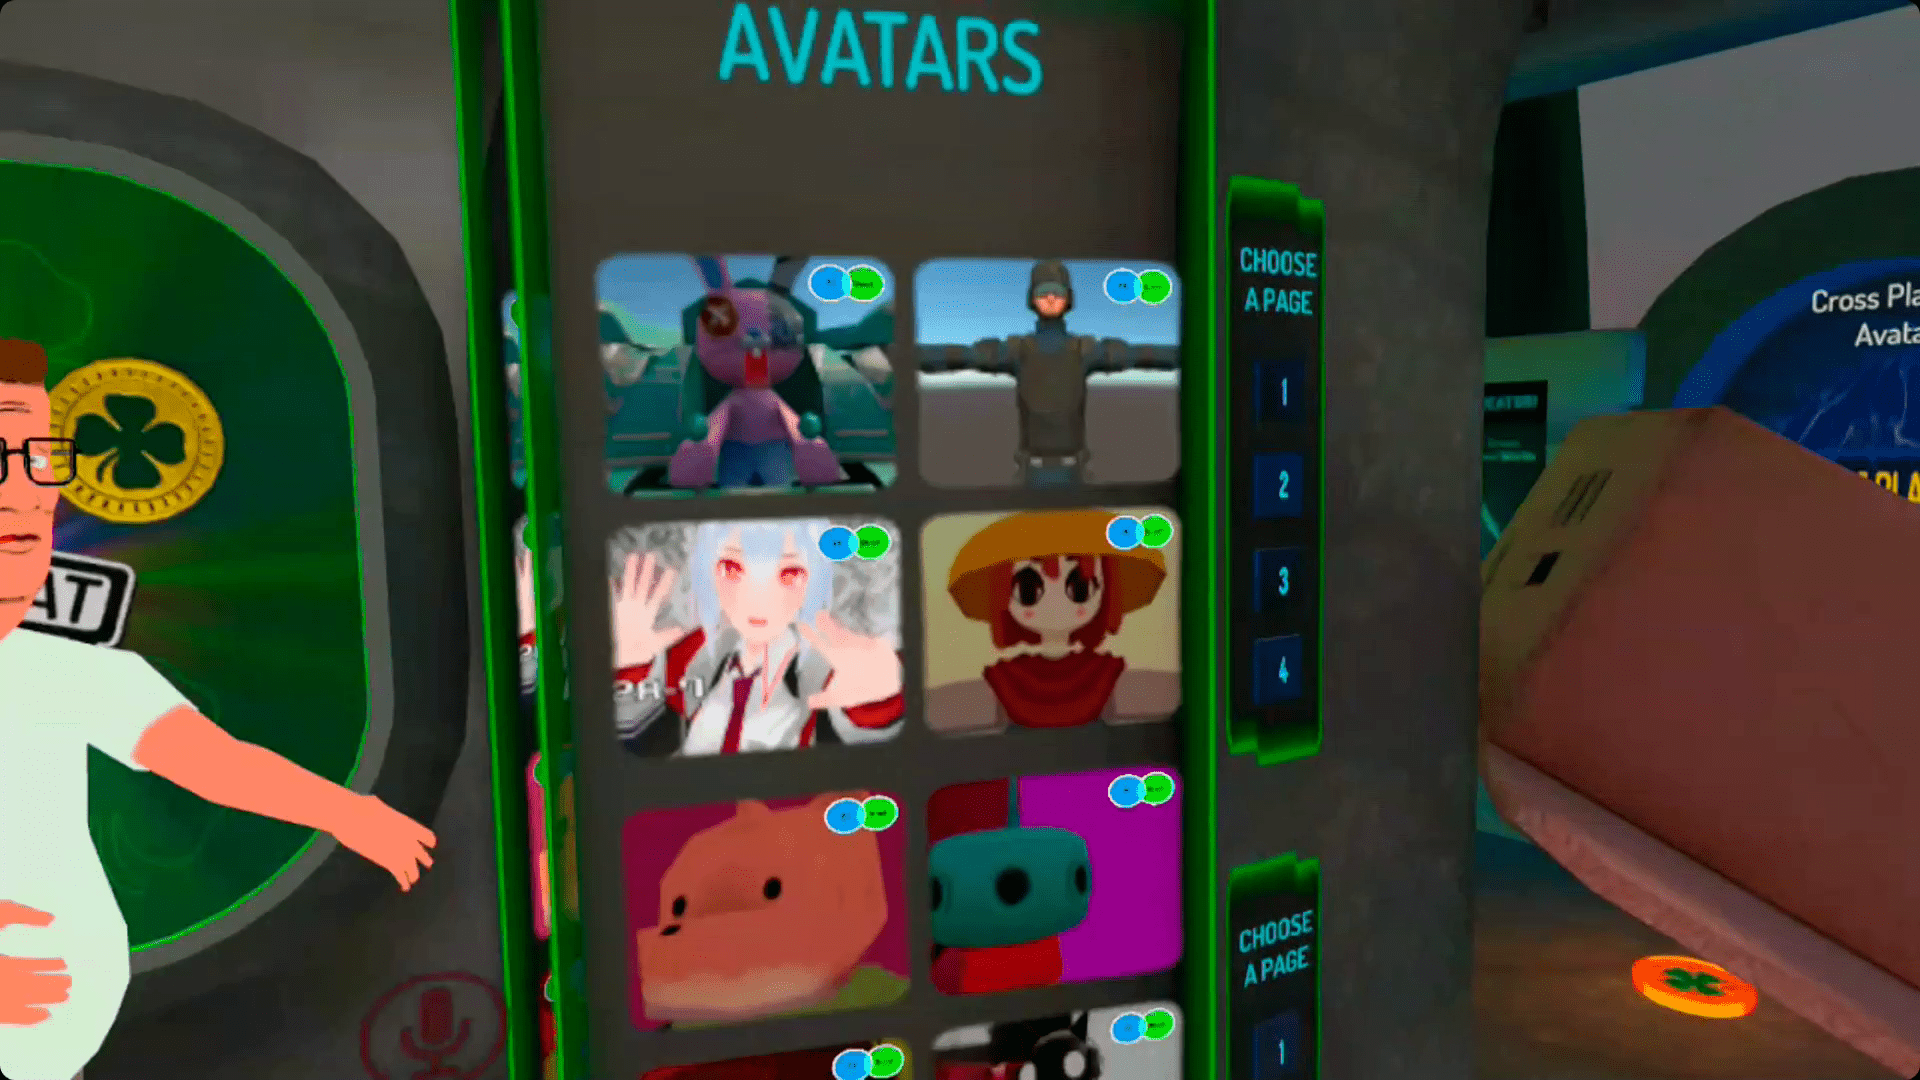 Avatars in VRChat on Quest.